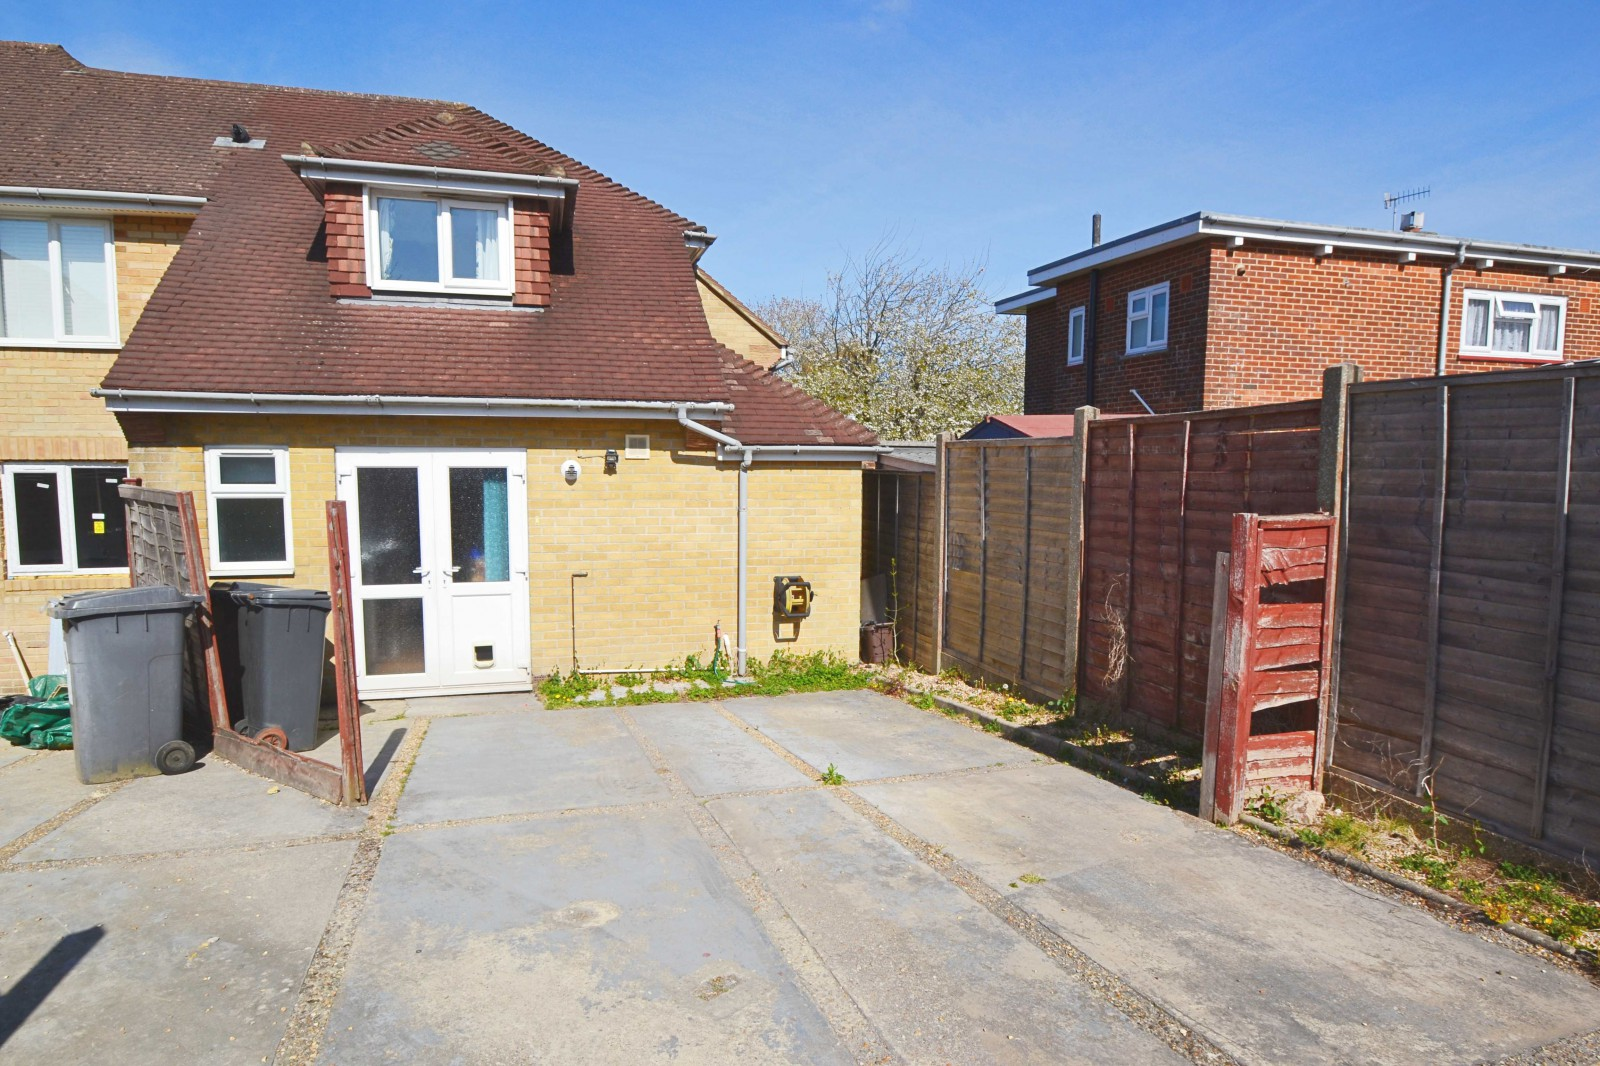 TWO BEDROOM FAMILY HOME WITH PARKING